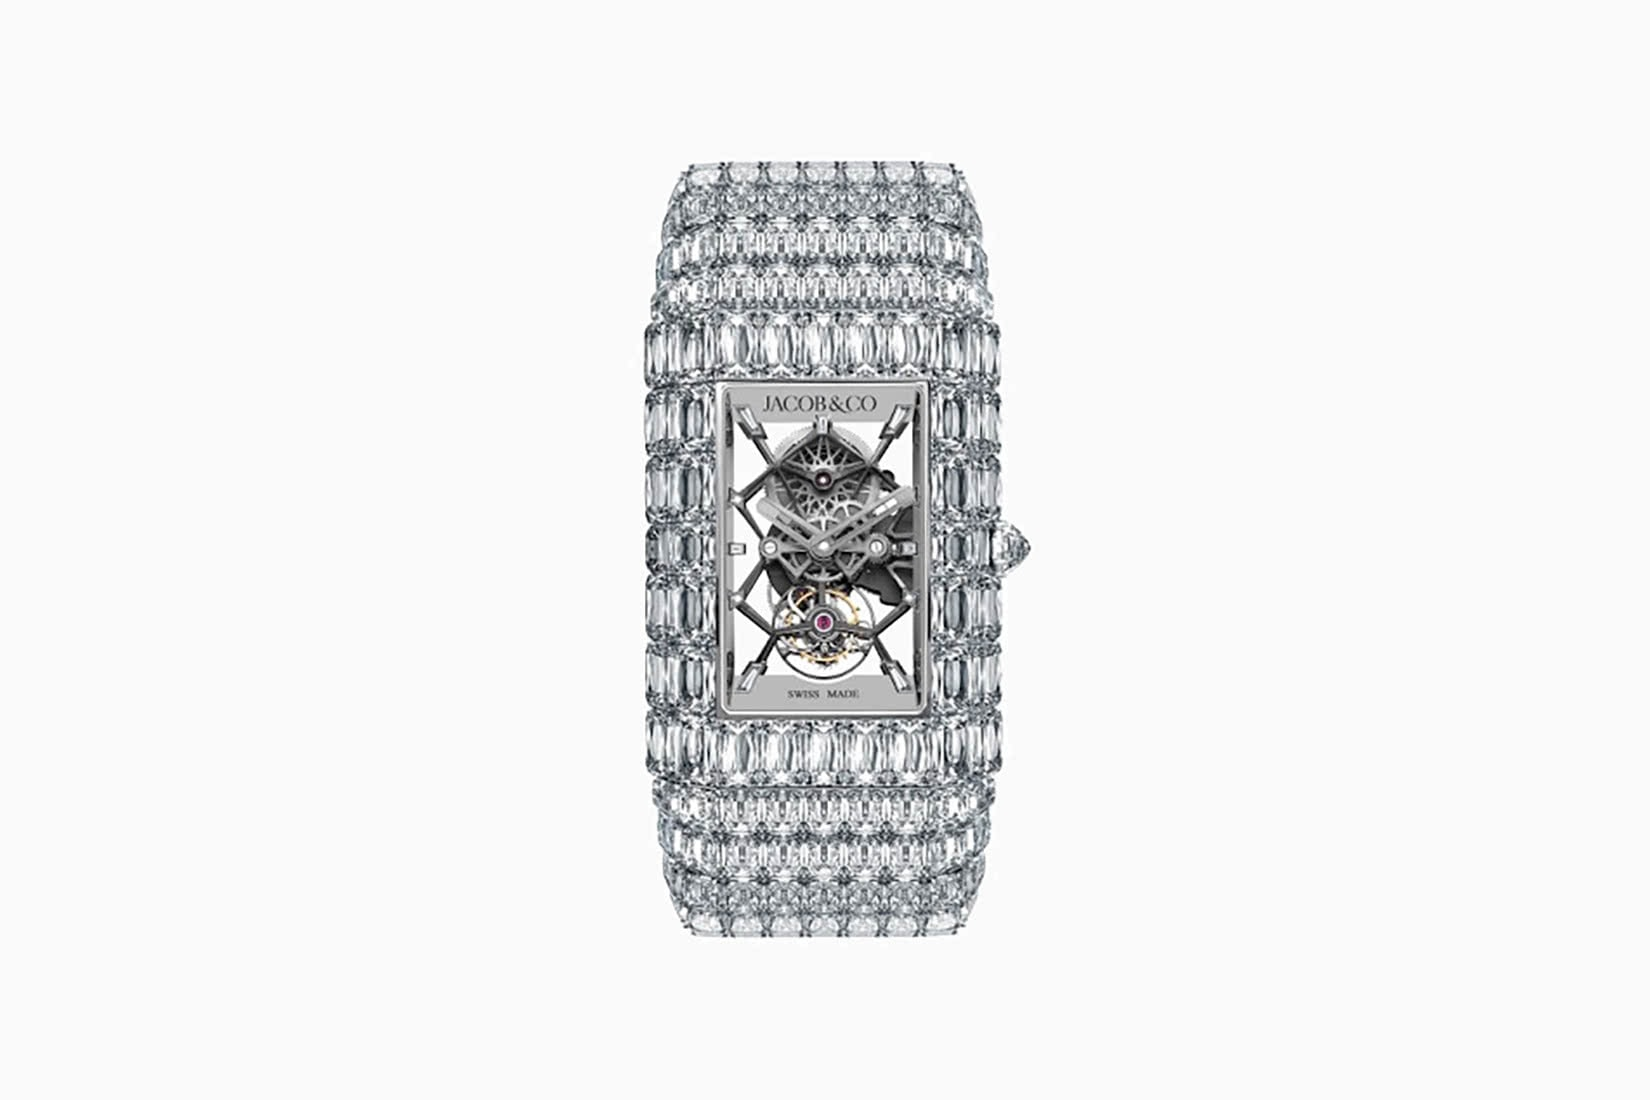 most expensive watches jacob & co. billionaire watch - Luxe Digital